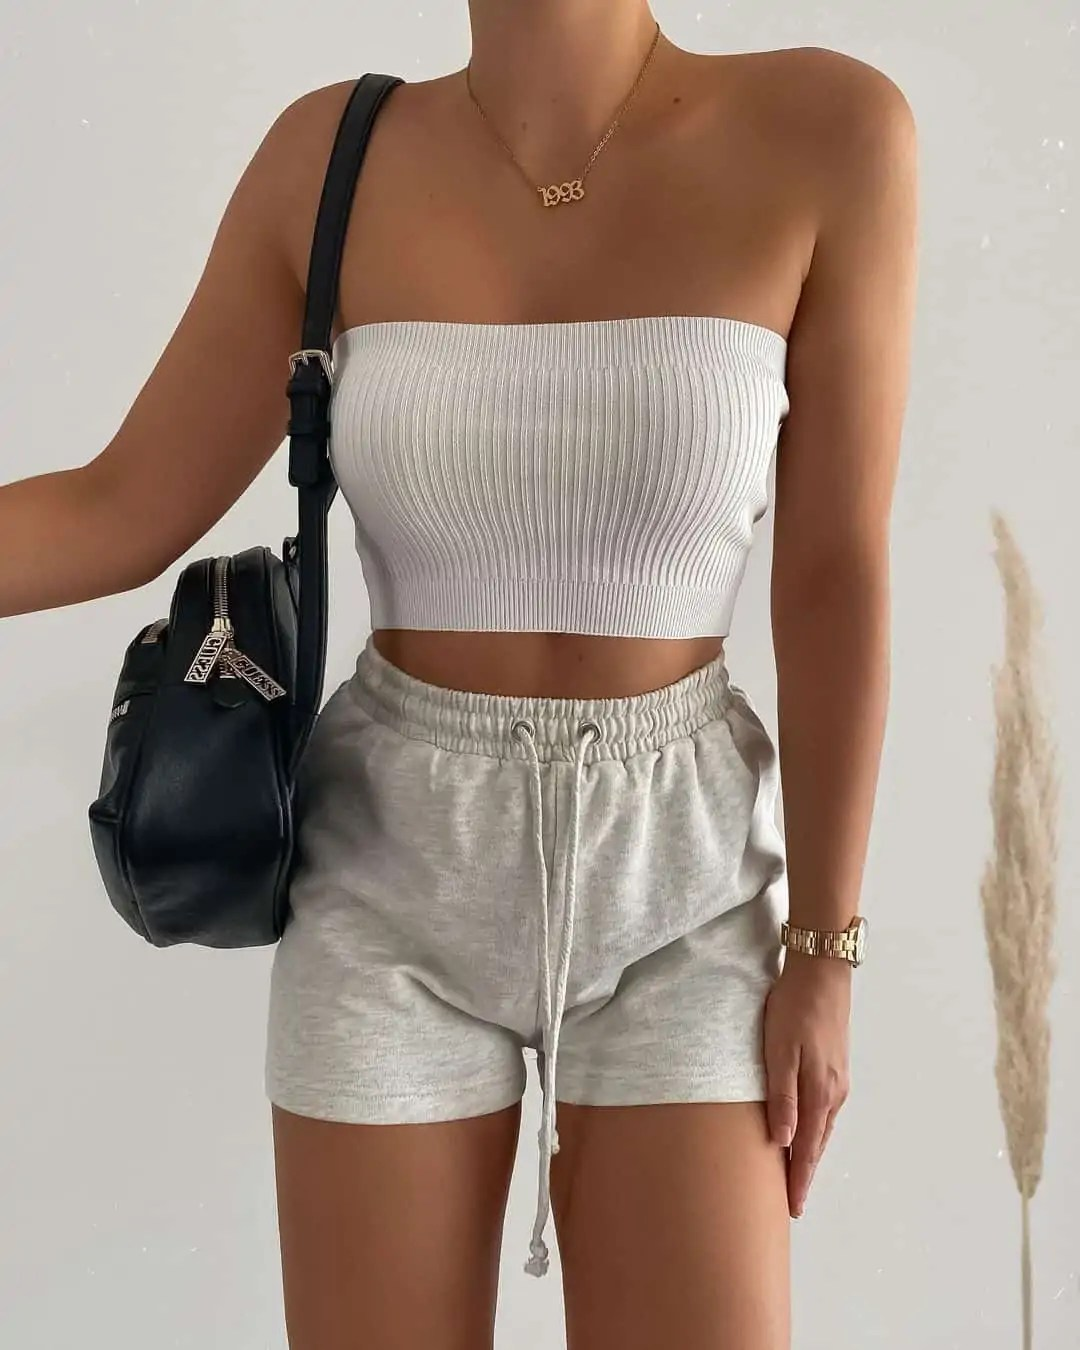 100+ Outfits to Inspire your next shopping haul 173